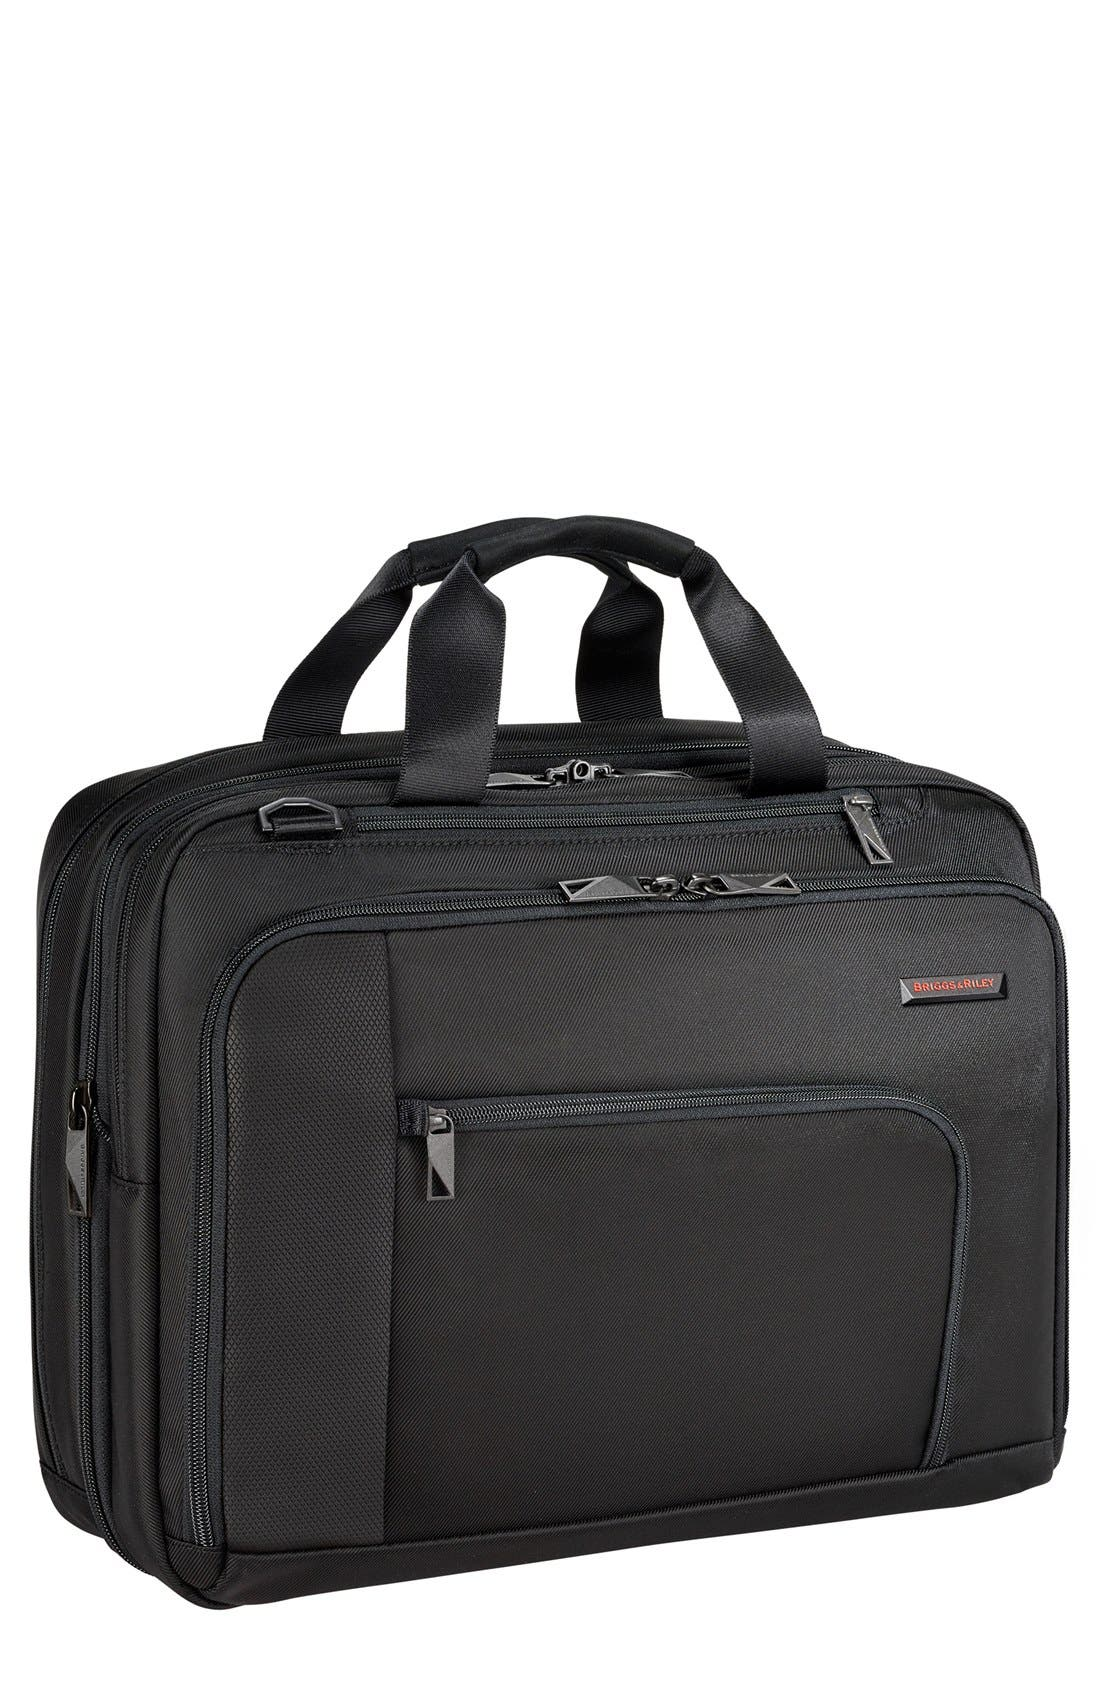 BRIGGS & RILEY Verb - Adapt Expandable Briefcase, Main, color, BLACK